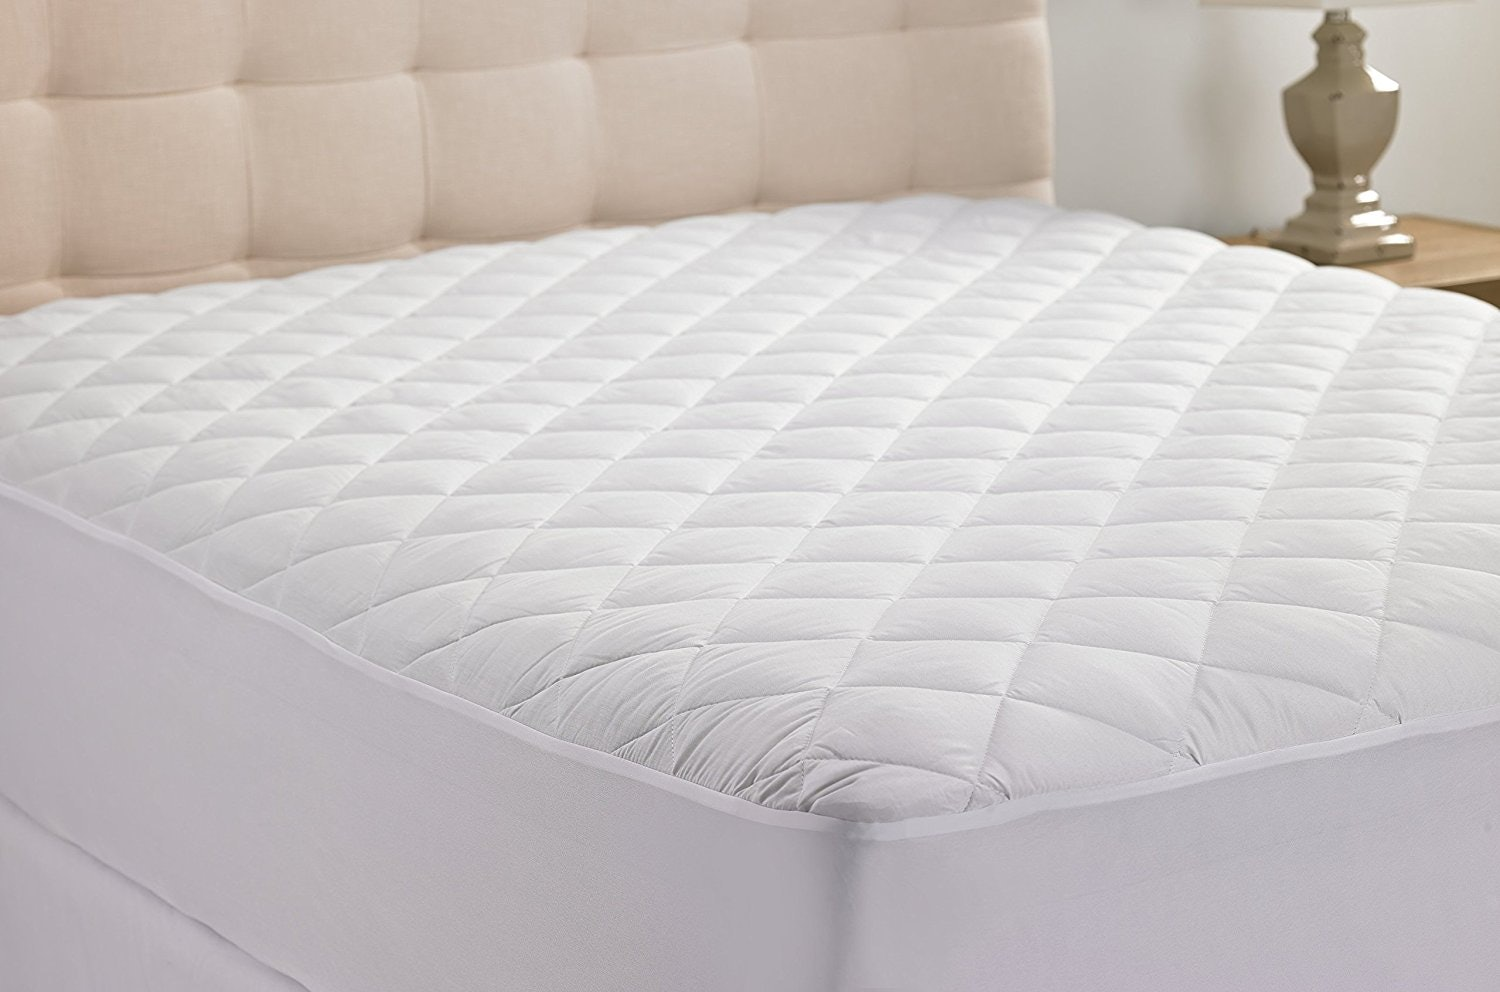 8a mattress pad that offers minimal padding and stays put